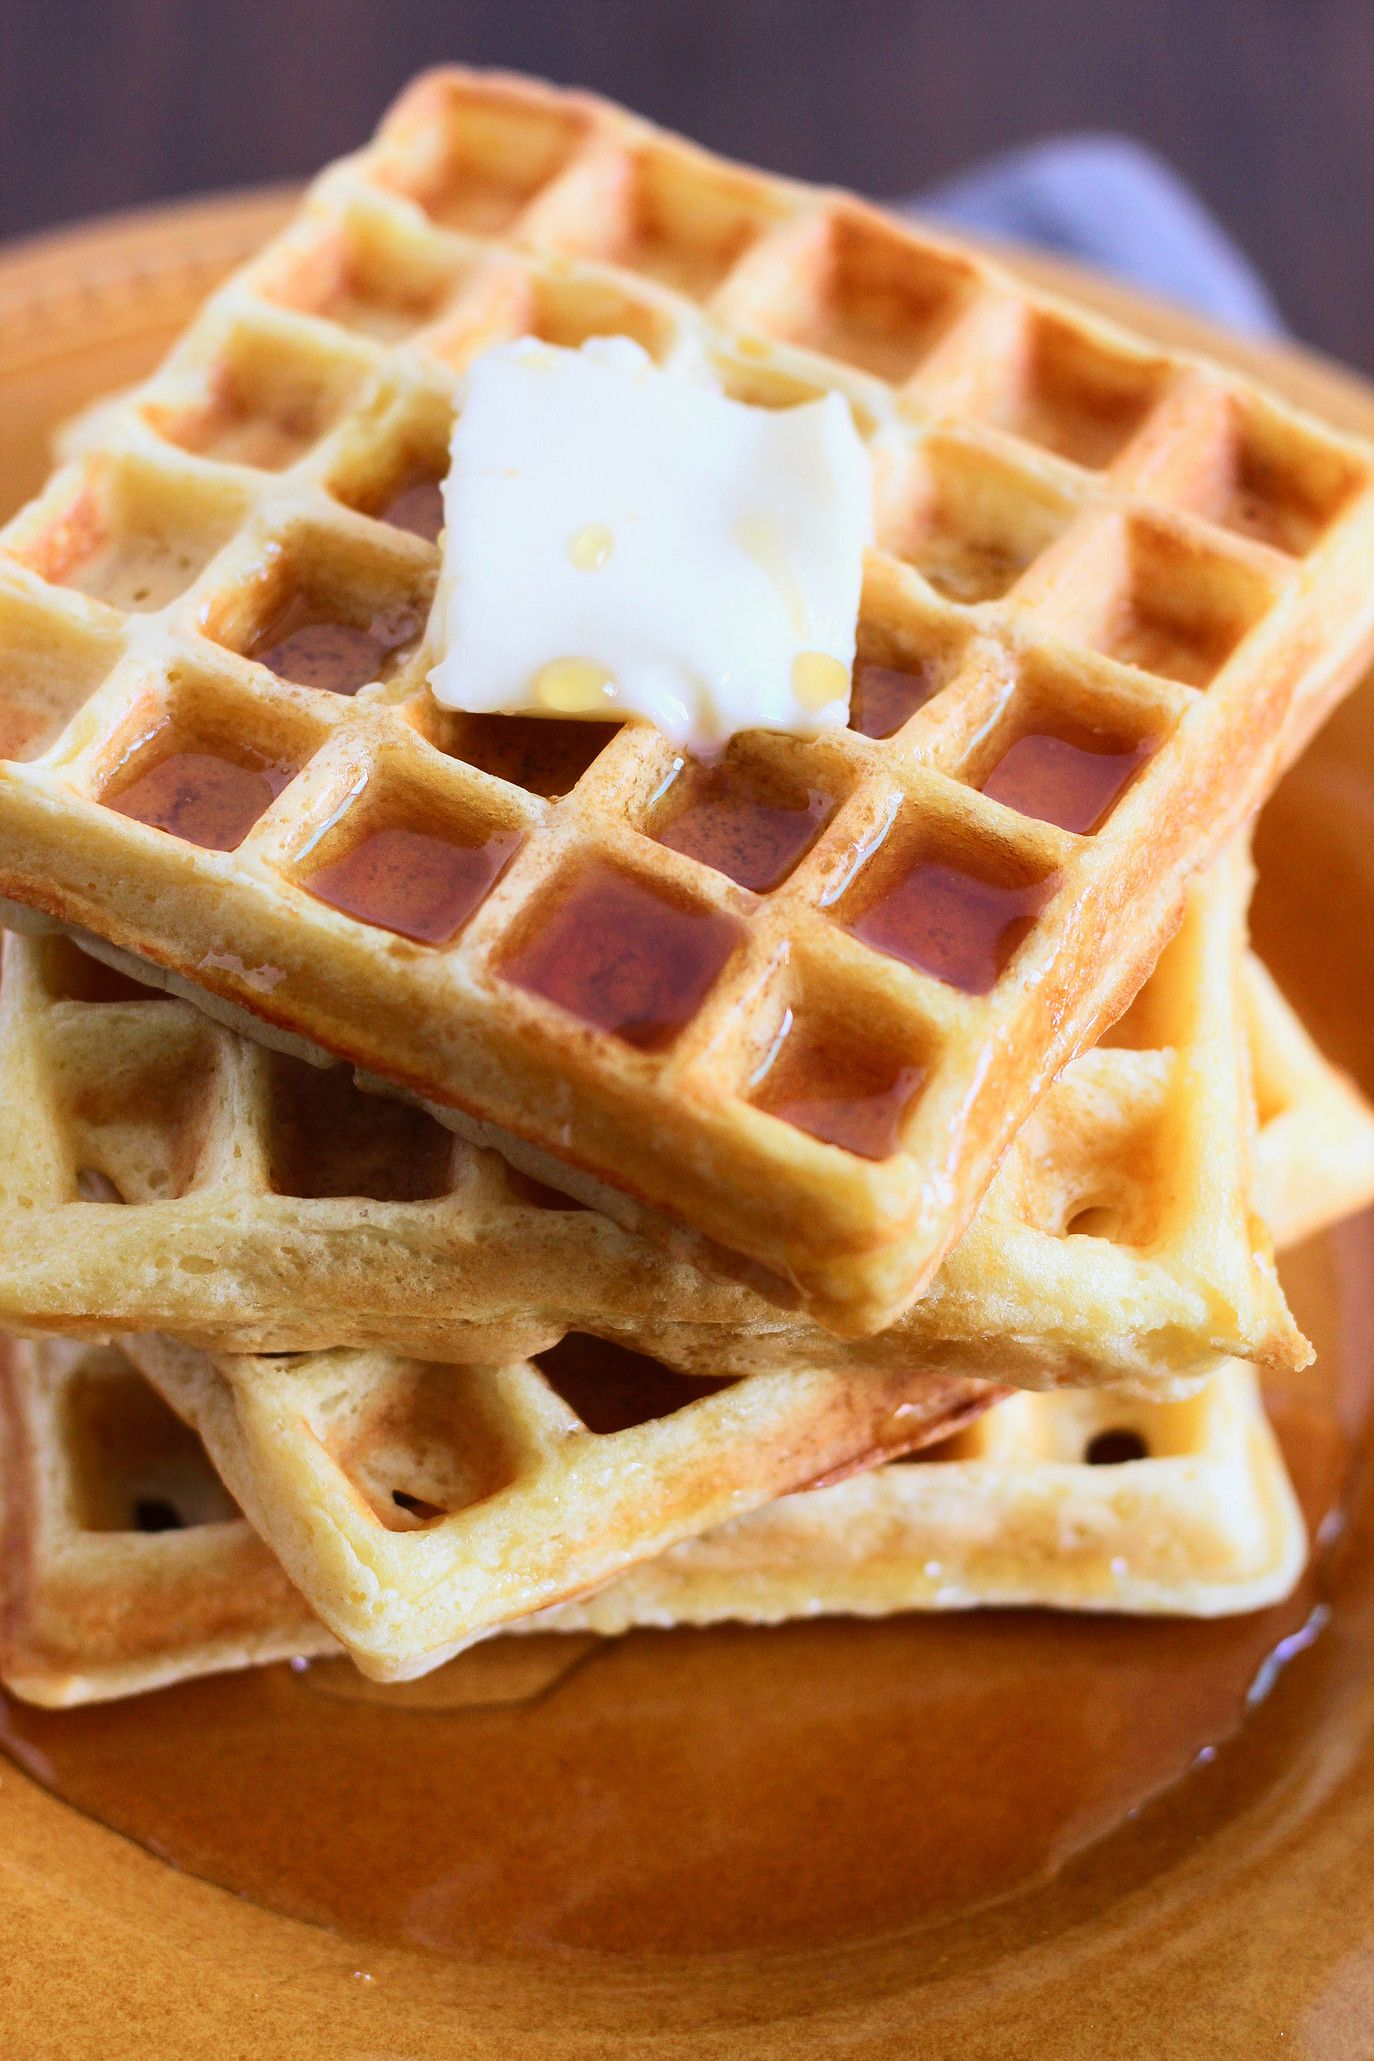 Fluffy Buttermilk Waffles Modern Crumb Recipe Homemade Waffles Waffle Recipes Waffles Recipe Homemade